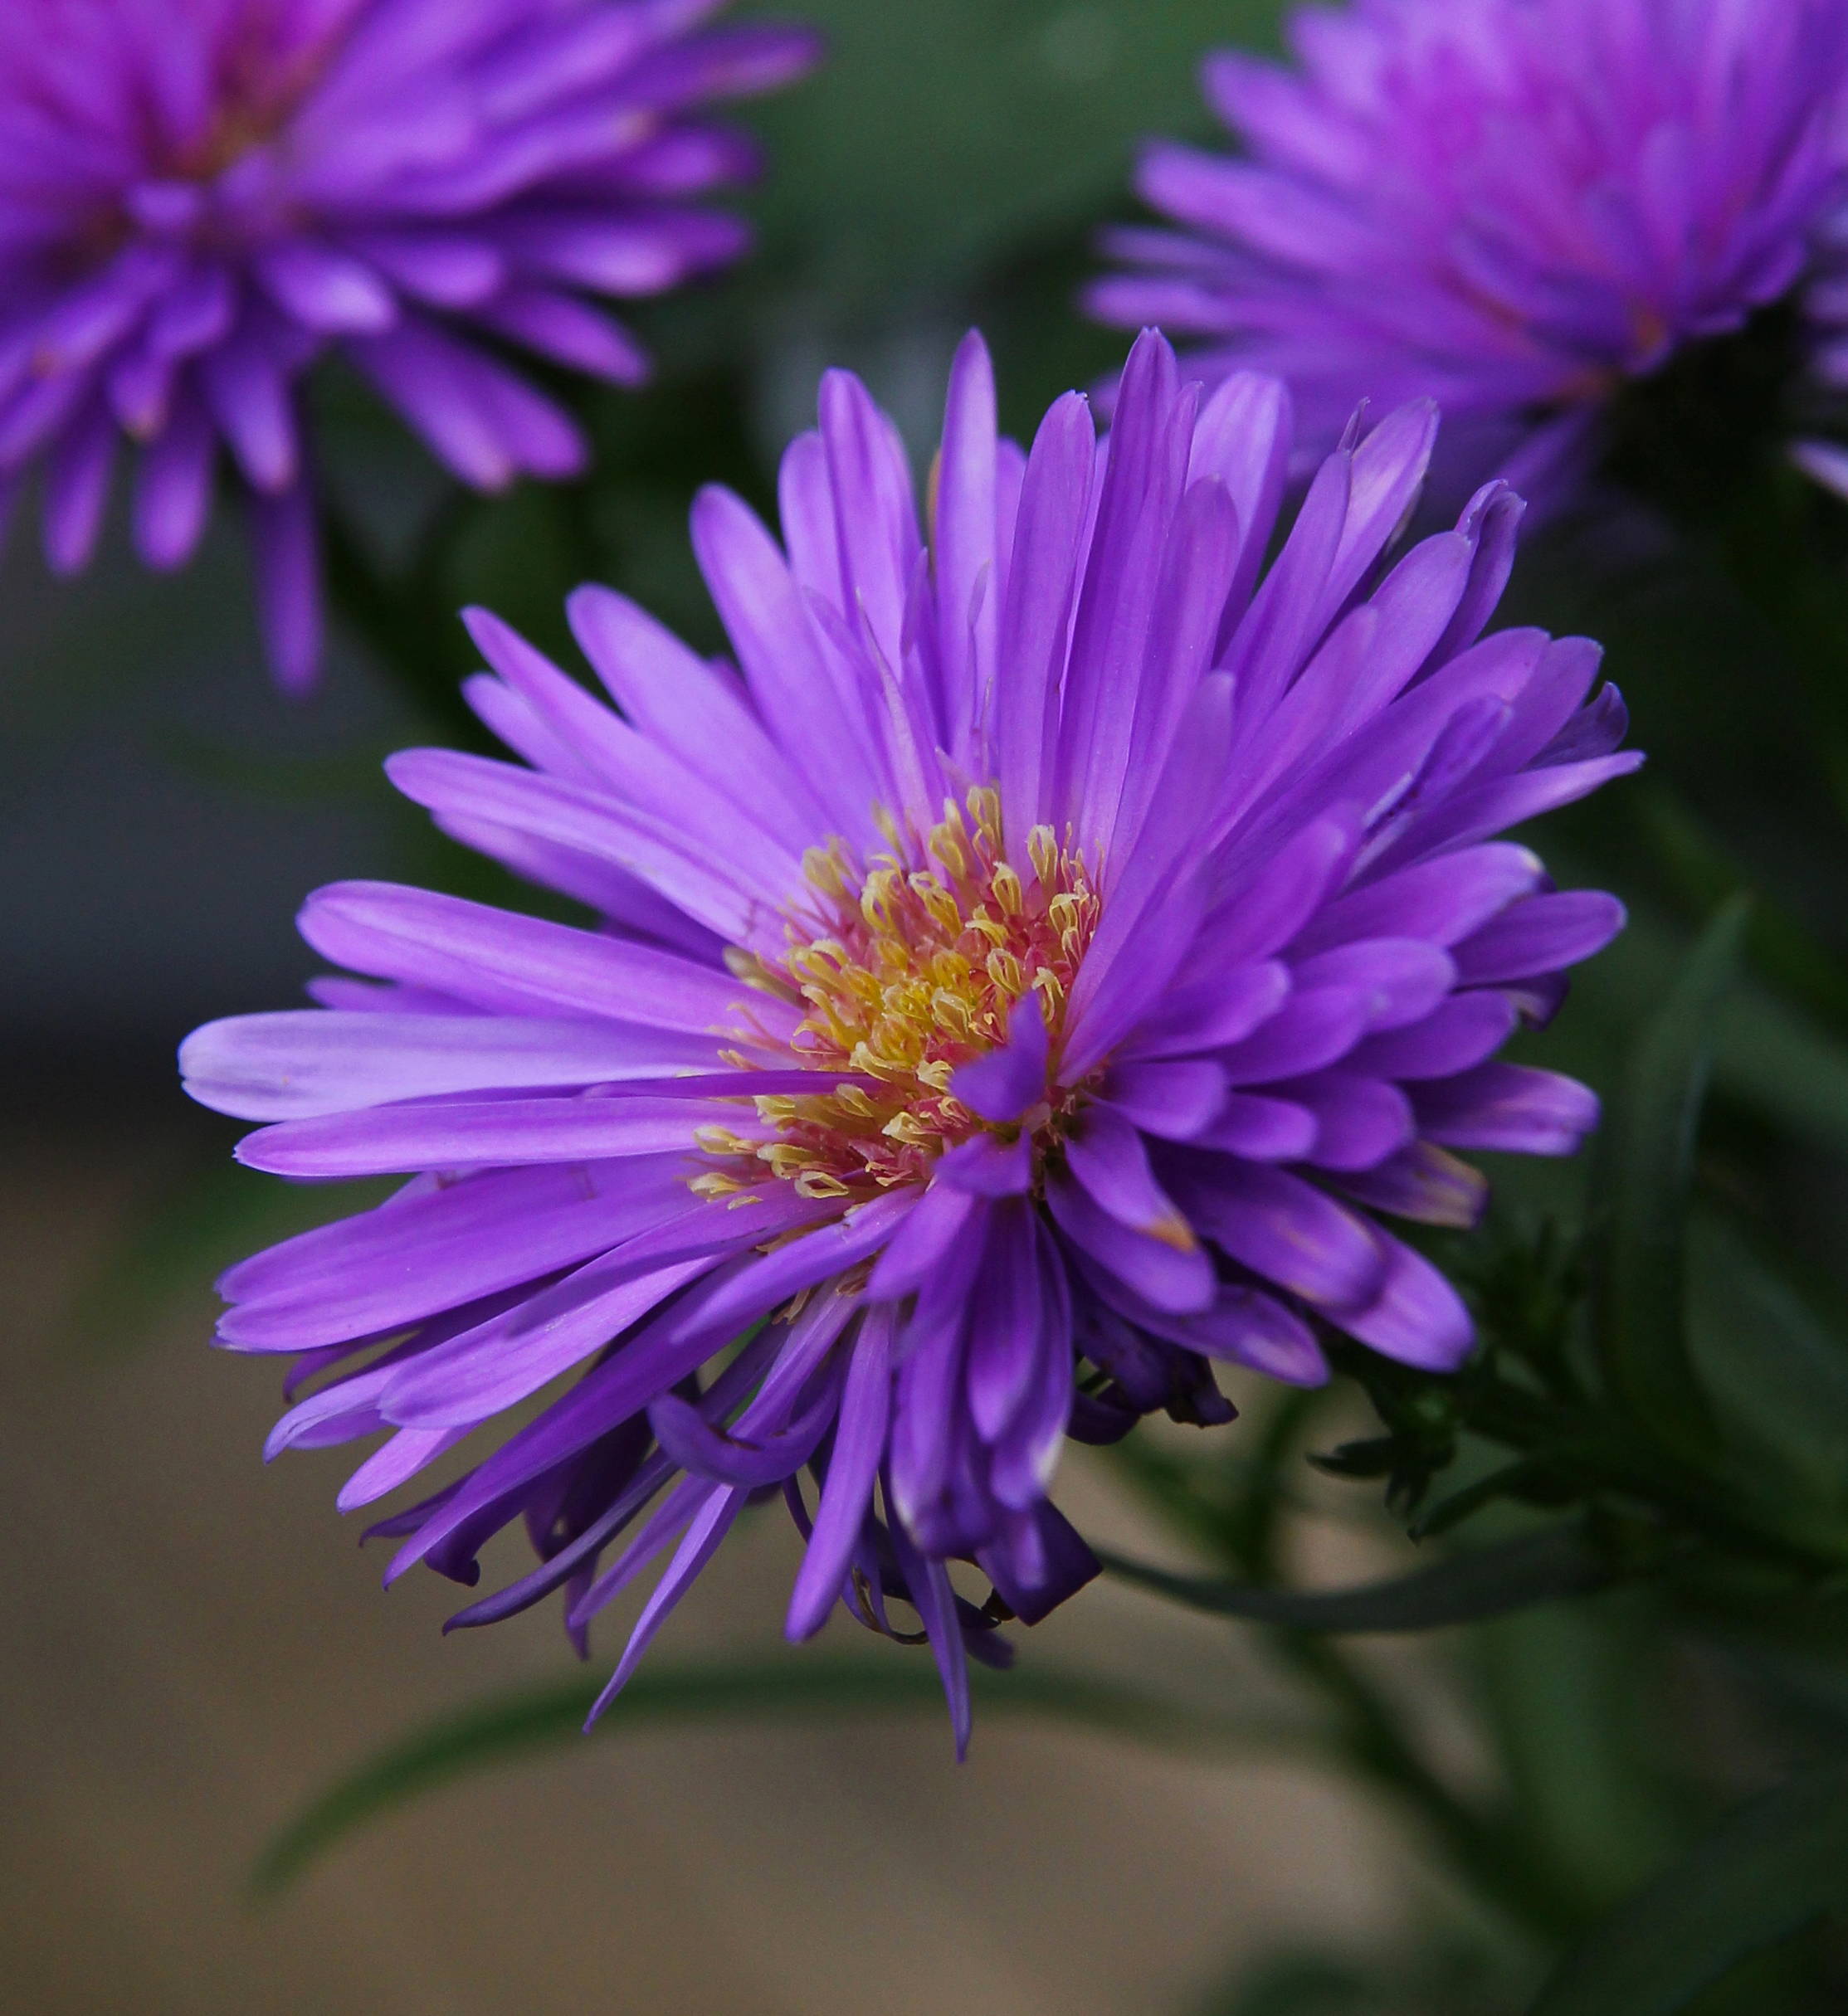 purple aster flowers  ingaphotography, Beautiful flower